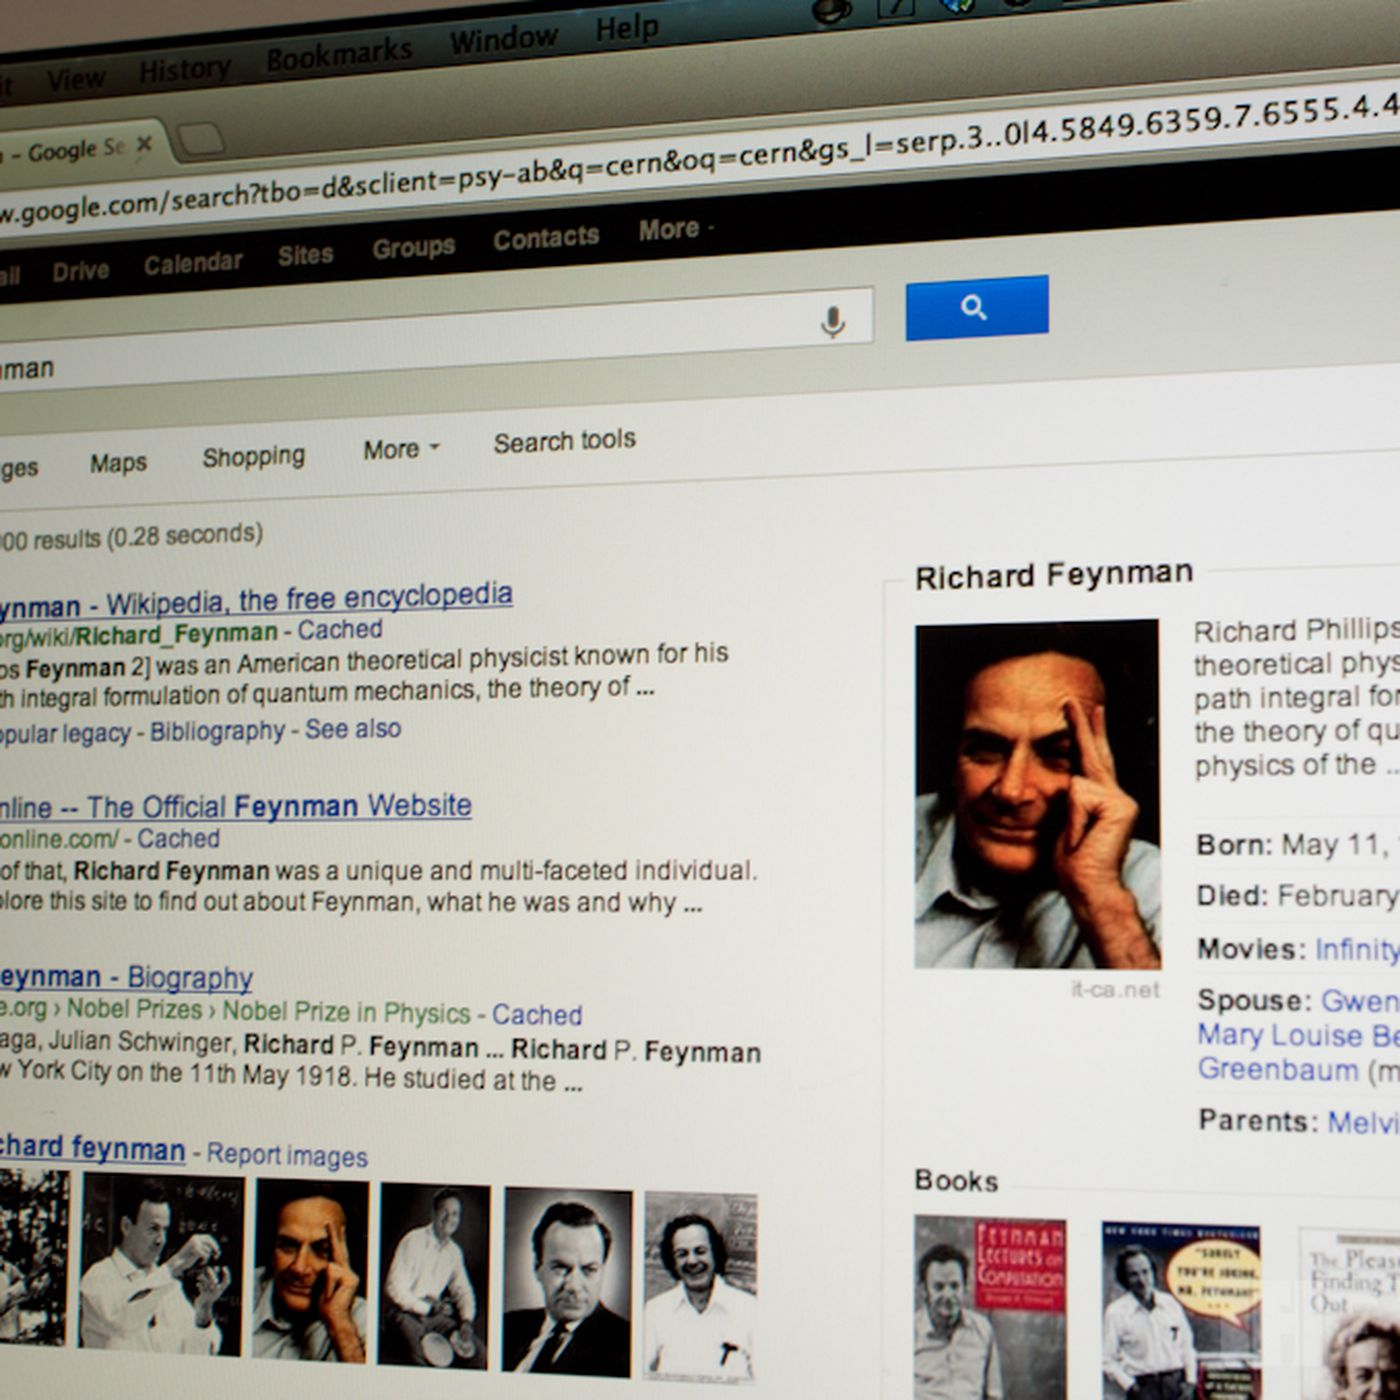 Google spruces up search page design, makes it easier to search by